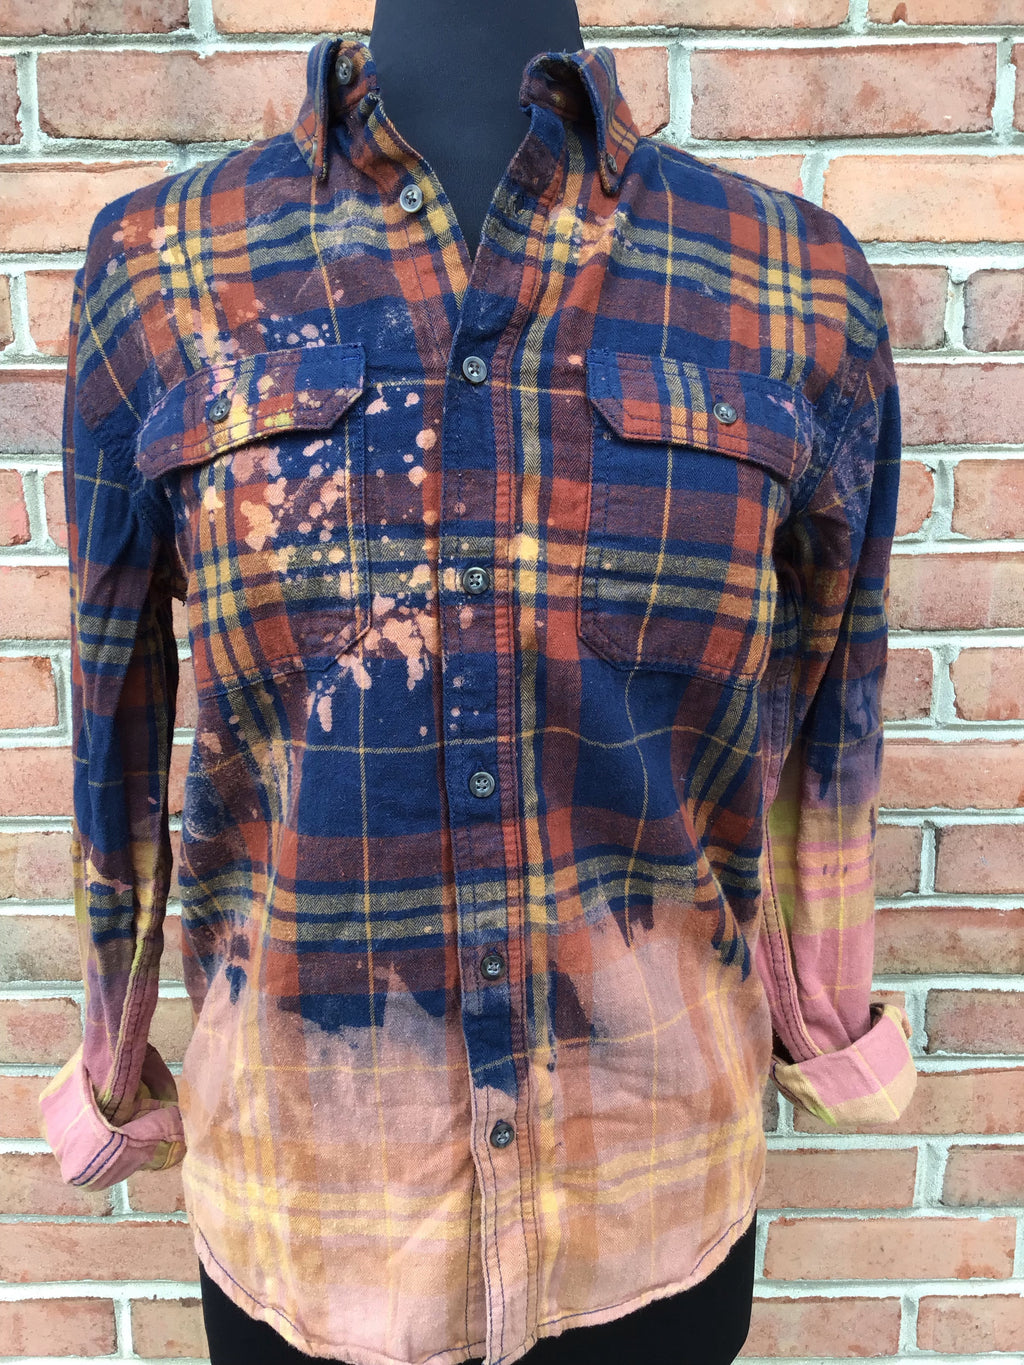 #426 One Of A Kind Flannel Tops (Blue and Brown Ombre)